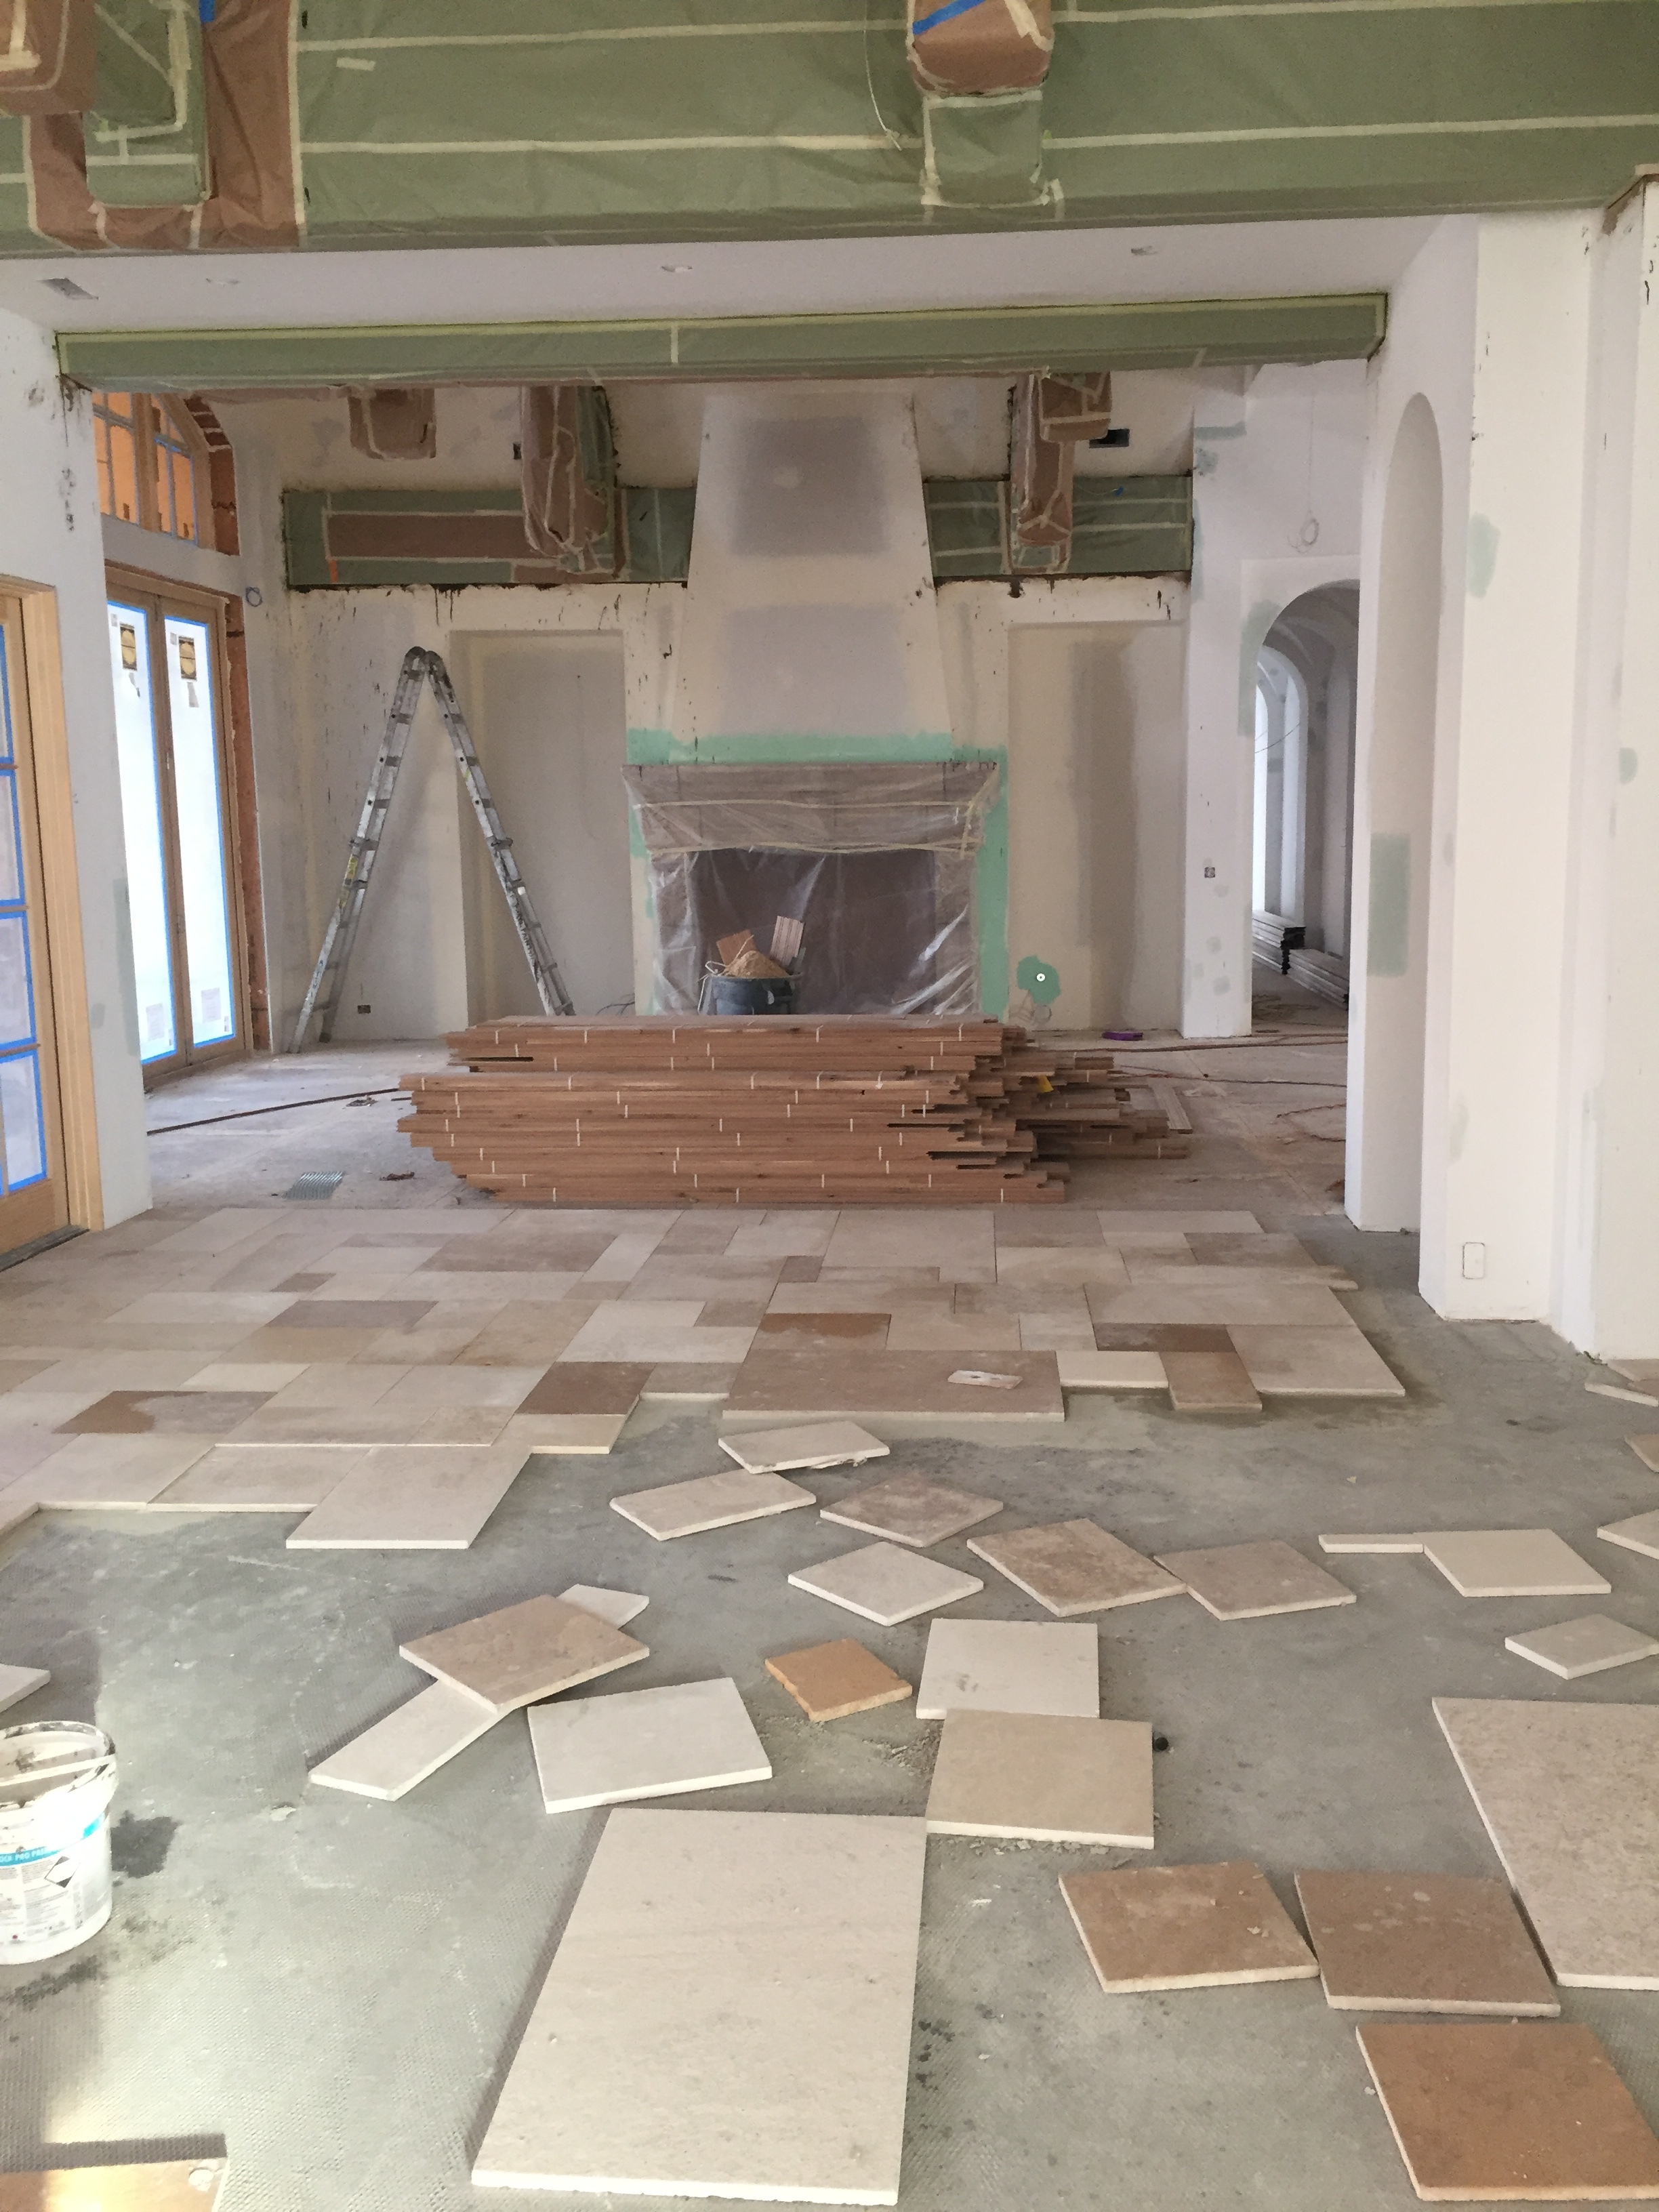 This beautiful antique limestone flooring is what was chosen for the dining room and kitchen. Behind that you can see the piles of wood flooring as it climatizes pre install. The beams were covered and taped off to ensure total protection during construction, as well as the antique fireplace.